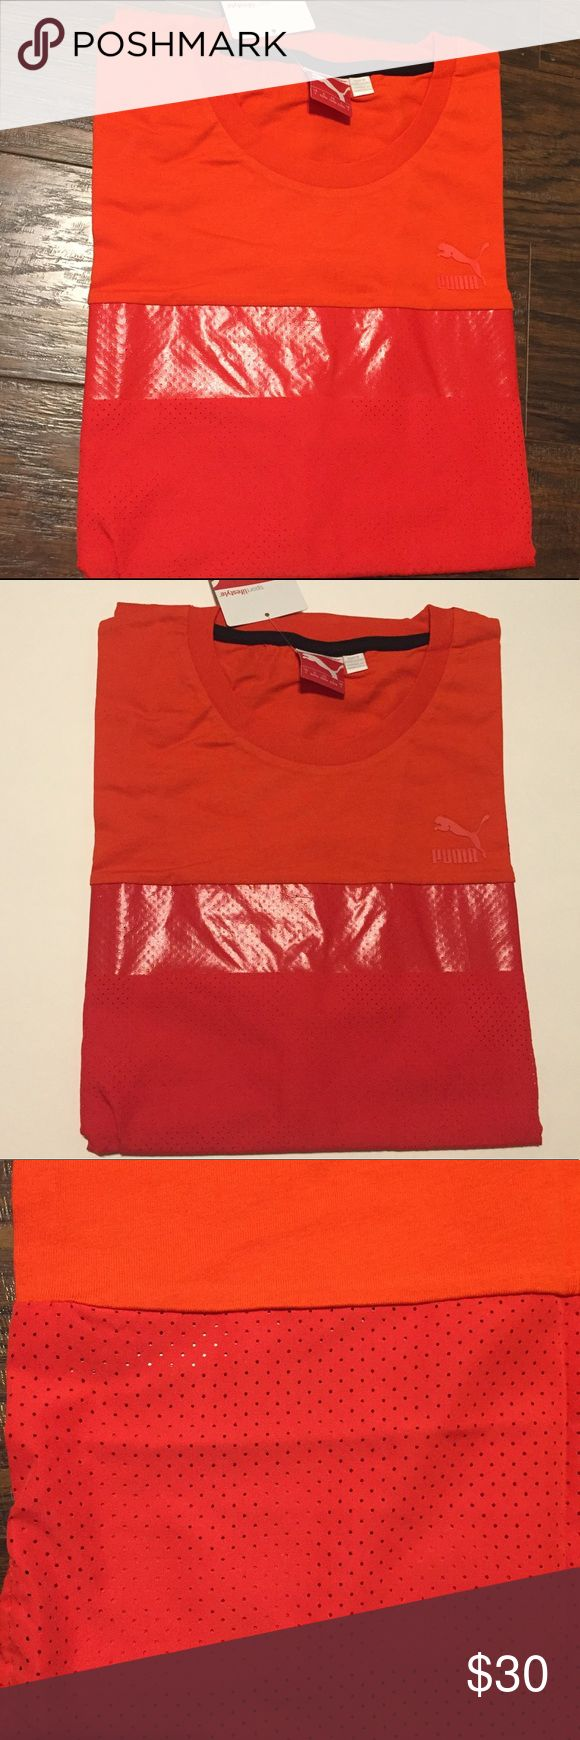 Men's Puma shirt Men's Puma fiery red shirt , great material , size: large, brand new with tags, and in package Puma Shirts Tees - Short Sleeve